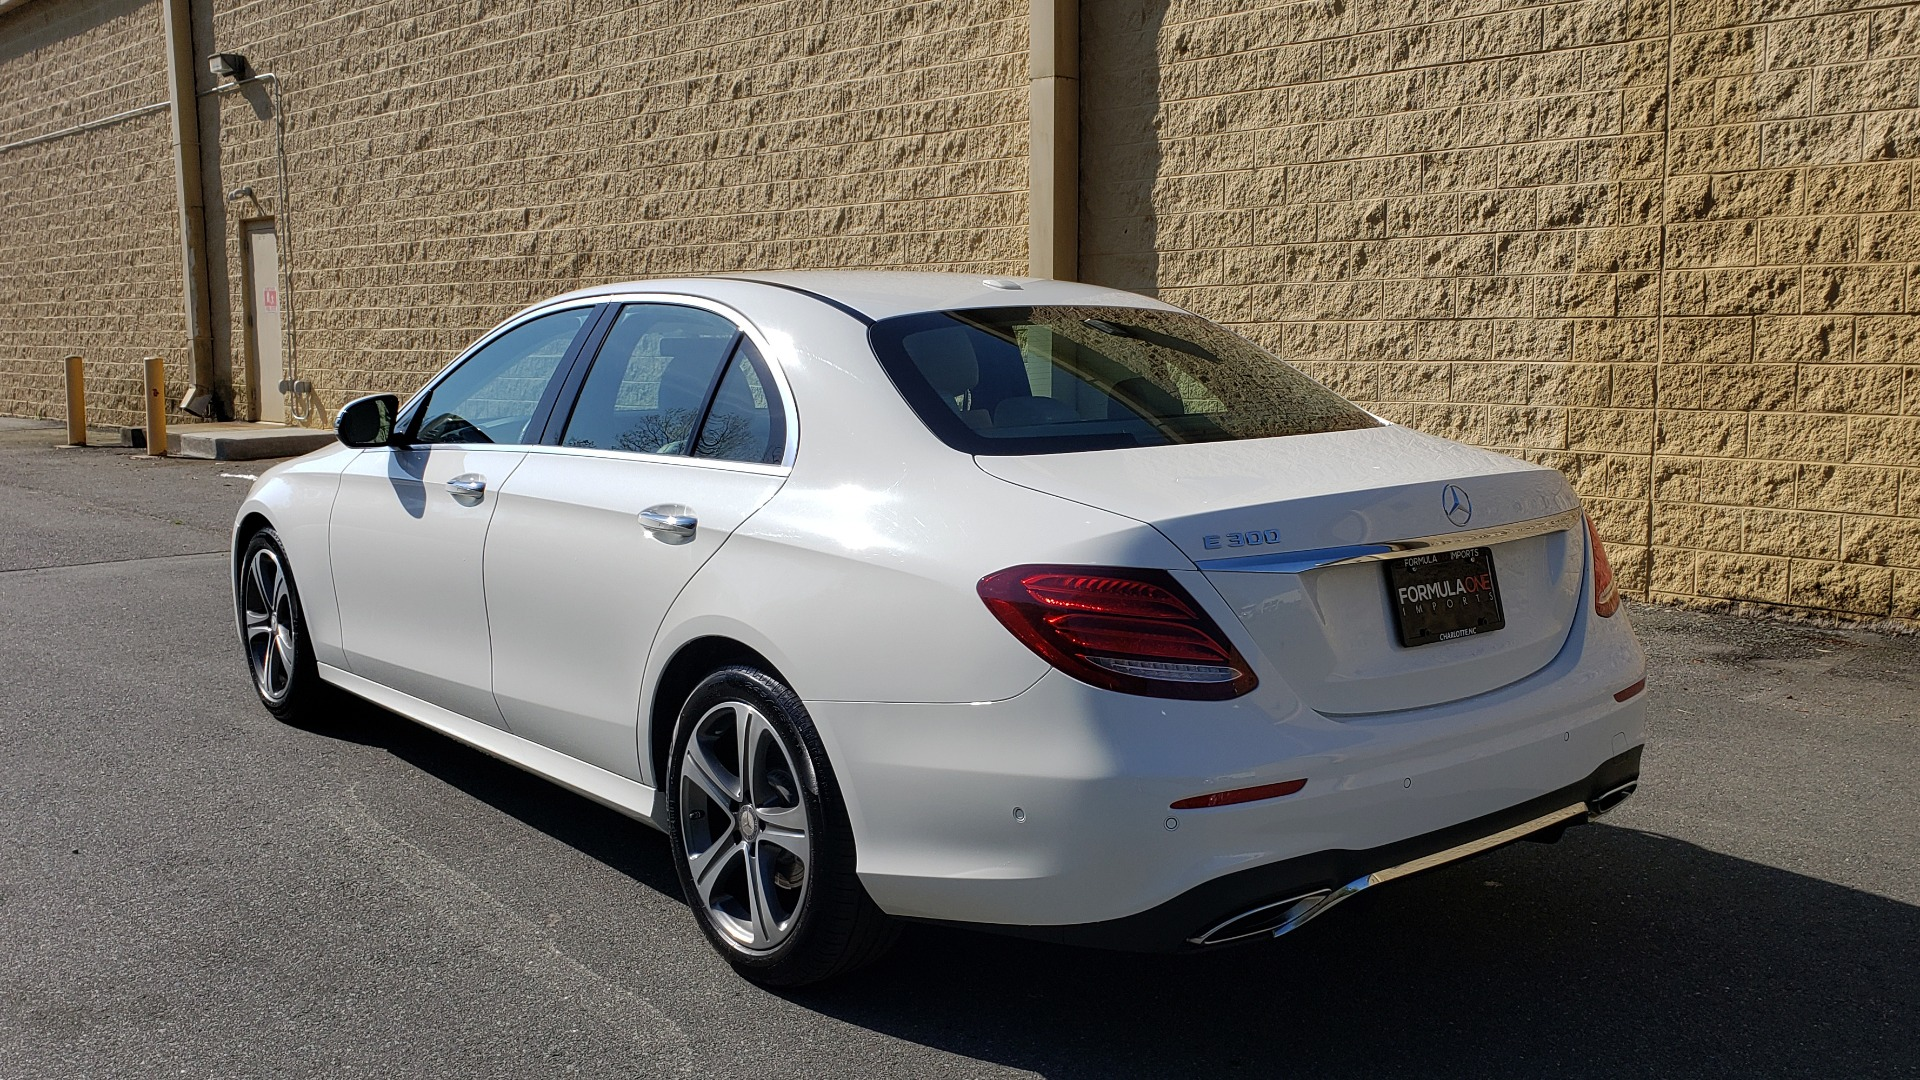 Used 2017 Mercedes-Benz E-Class E 300 PREMIUM / RWD / NAV / SNF / PARKING PILOT / REARVIEW / BURMESTER for sale Sold at Formula Imports in Charlotte NC 28227 3